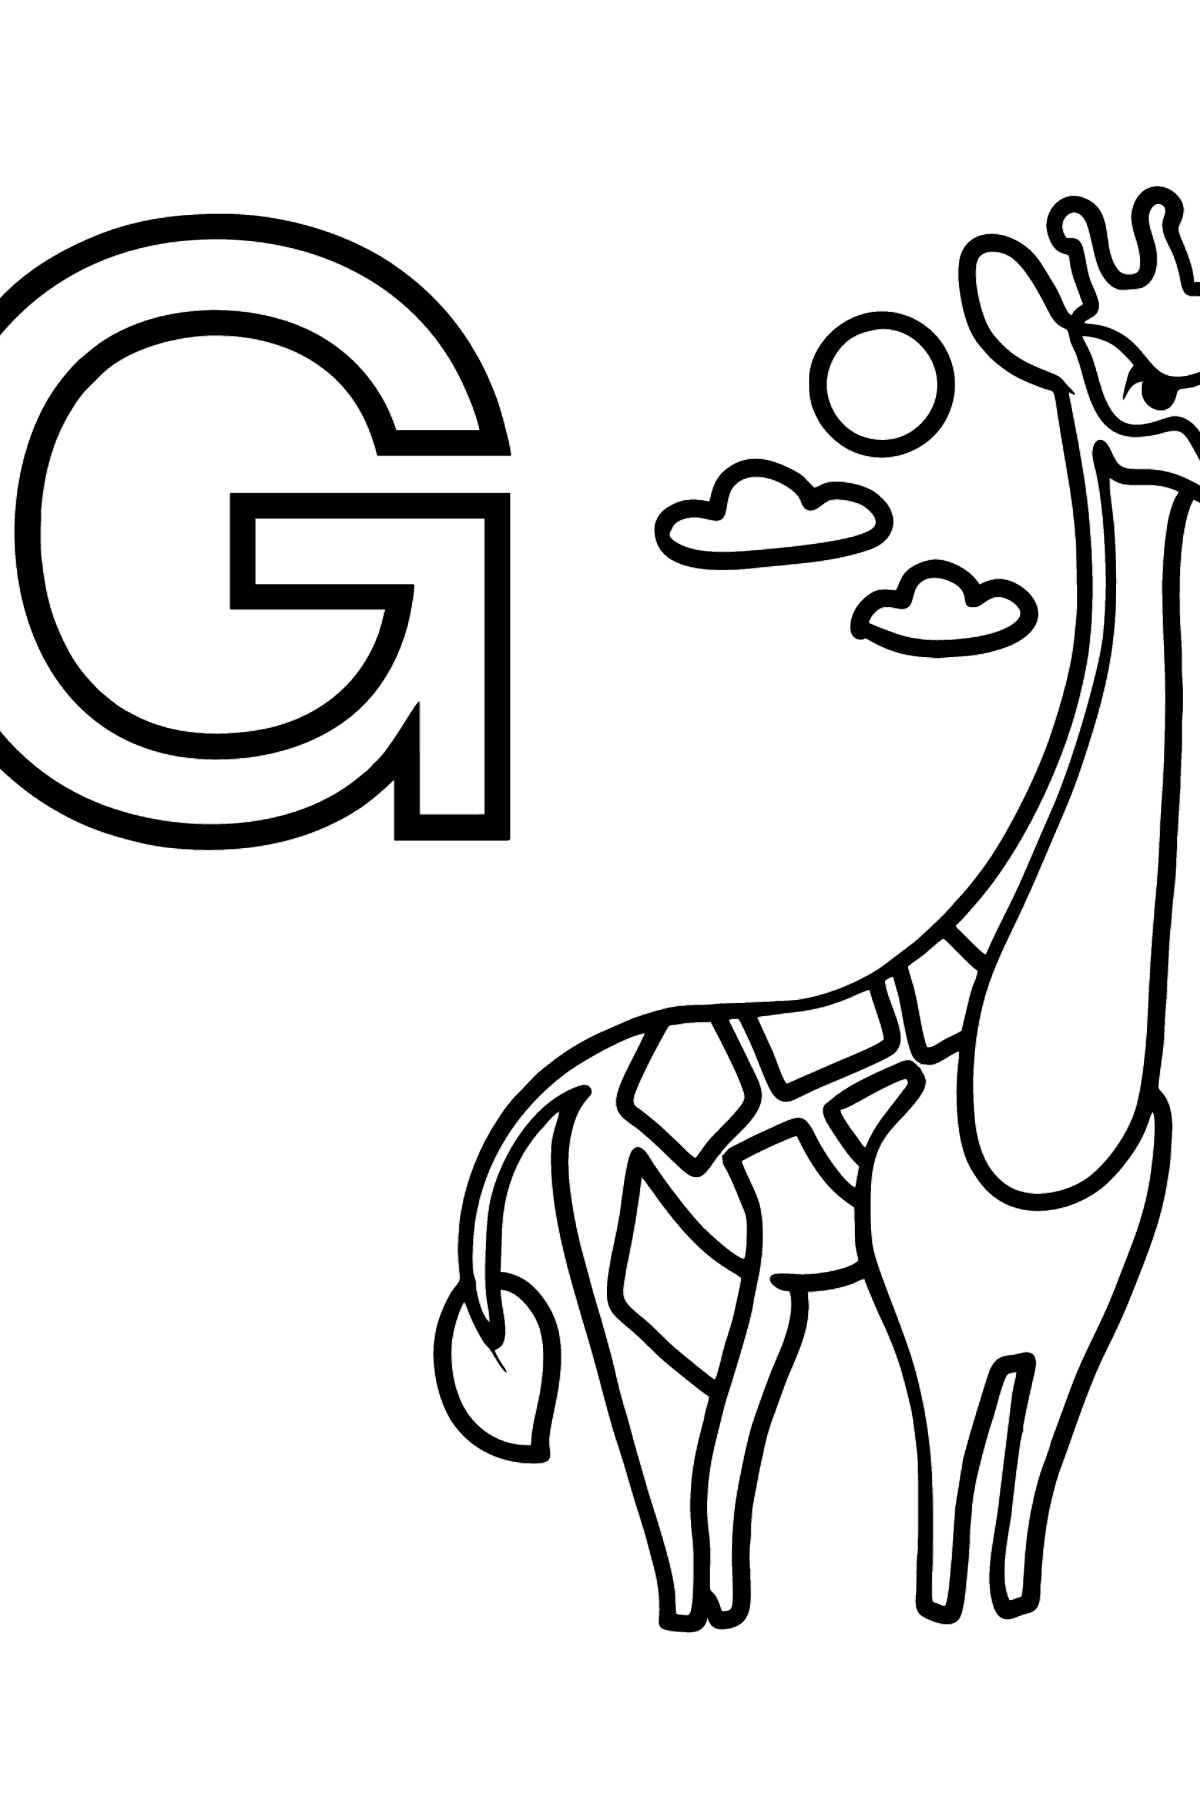 French Letter G coloring pages - GIRAFE - Coloring Pages for Kids